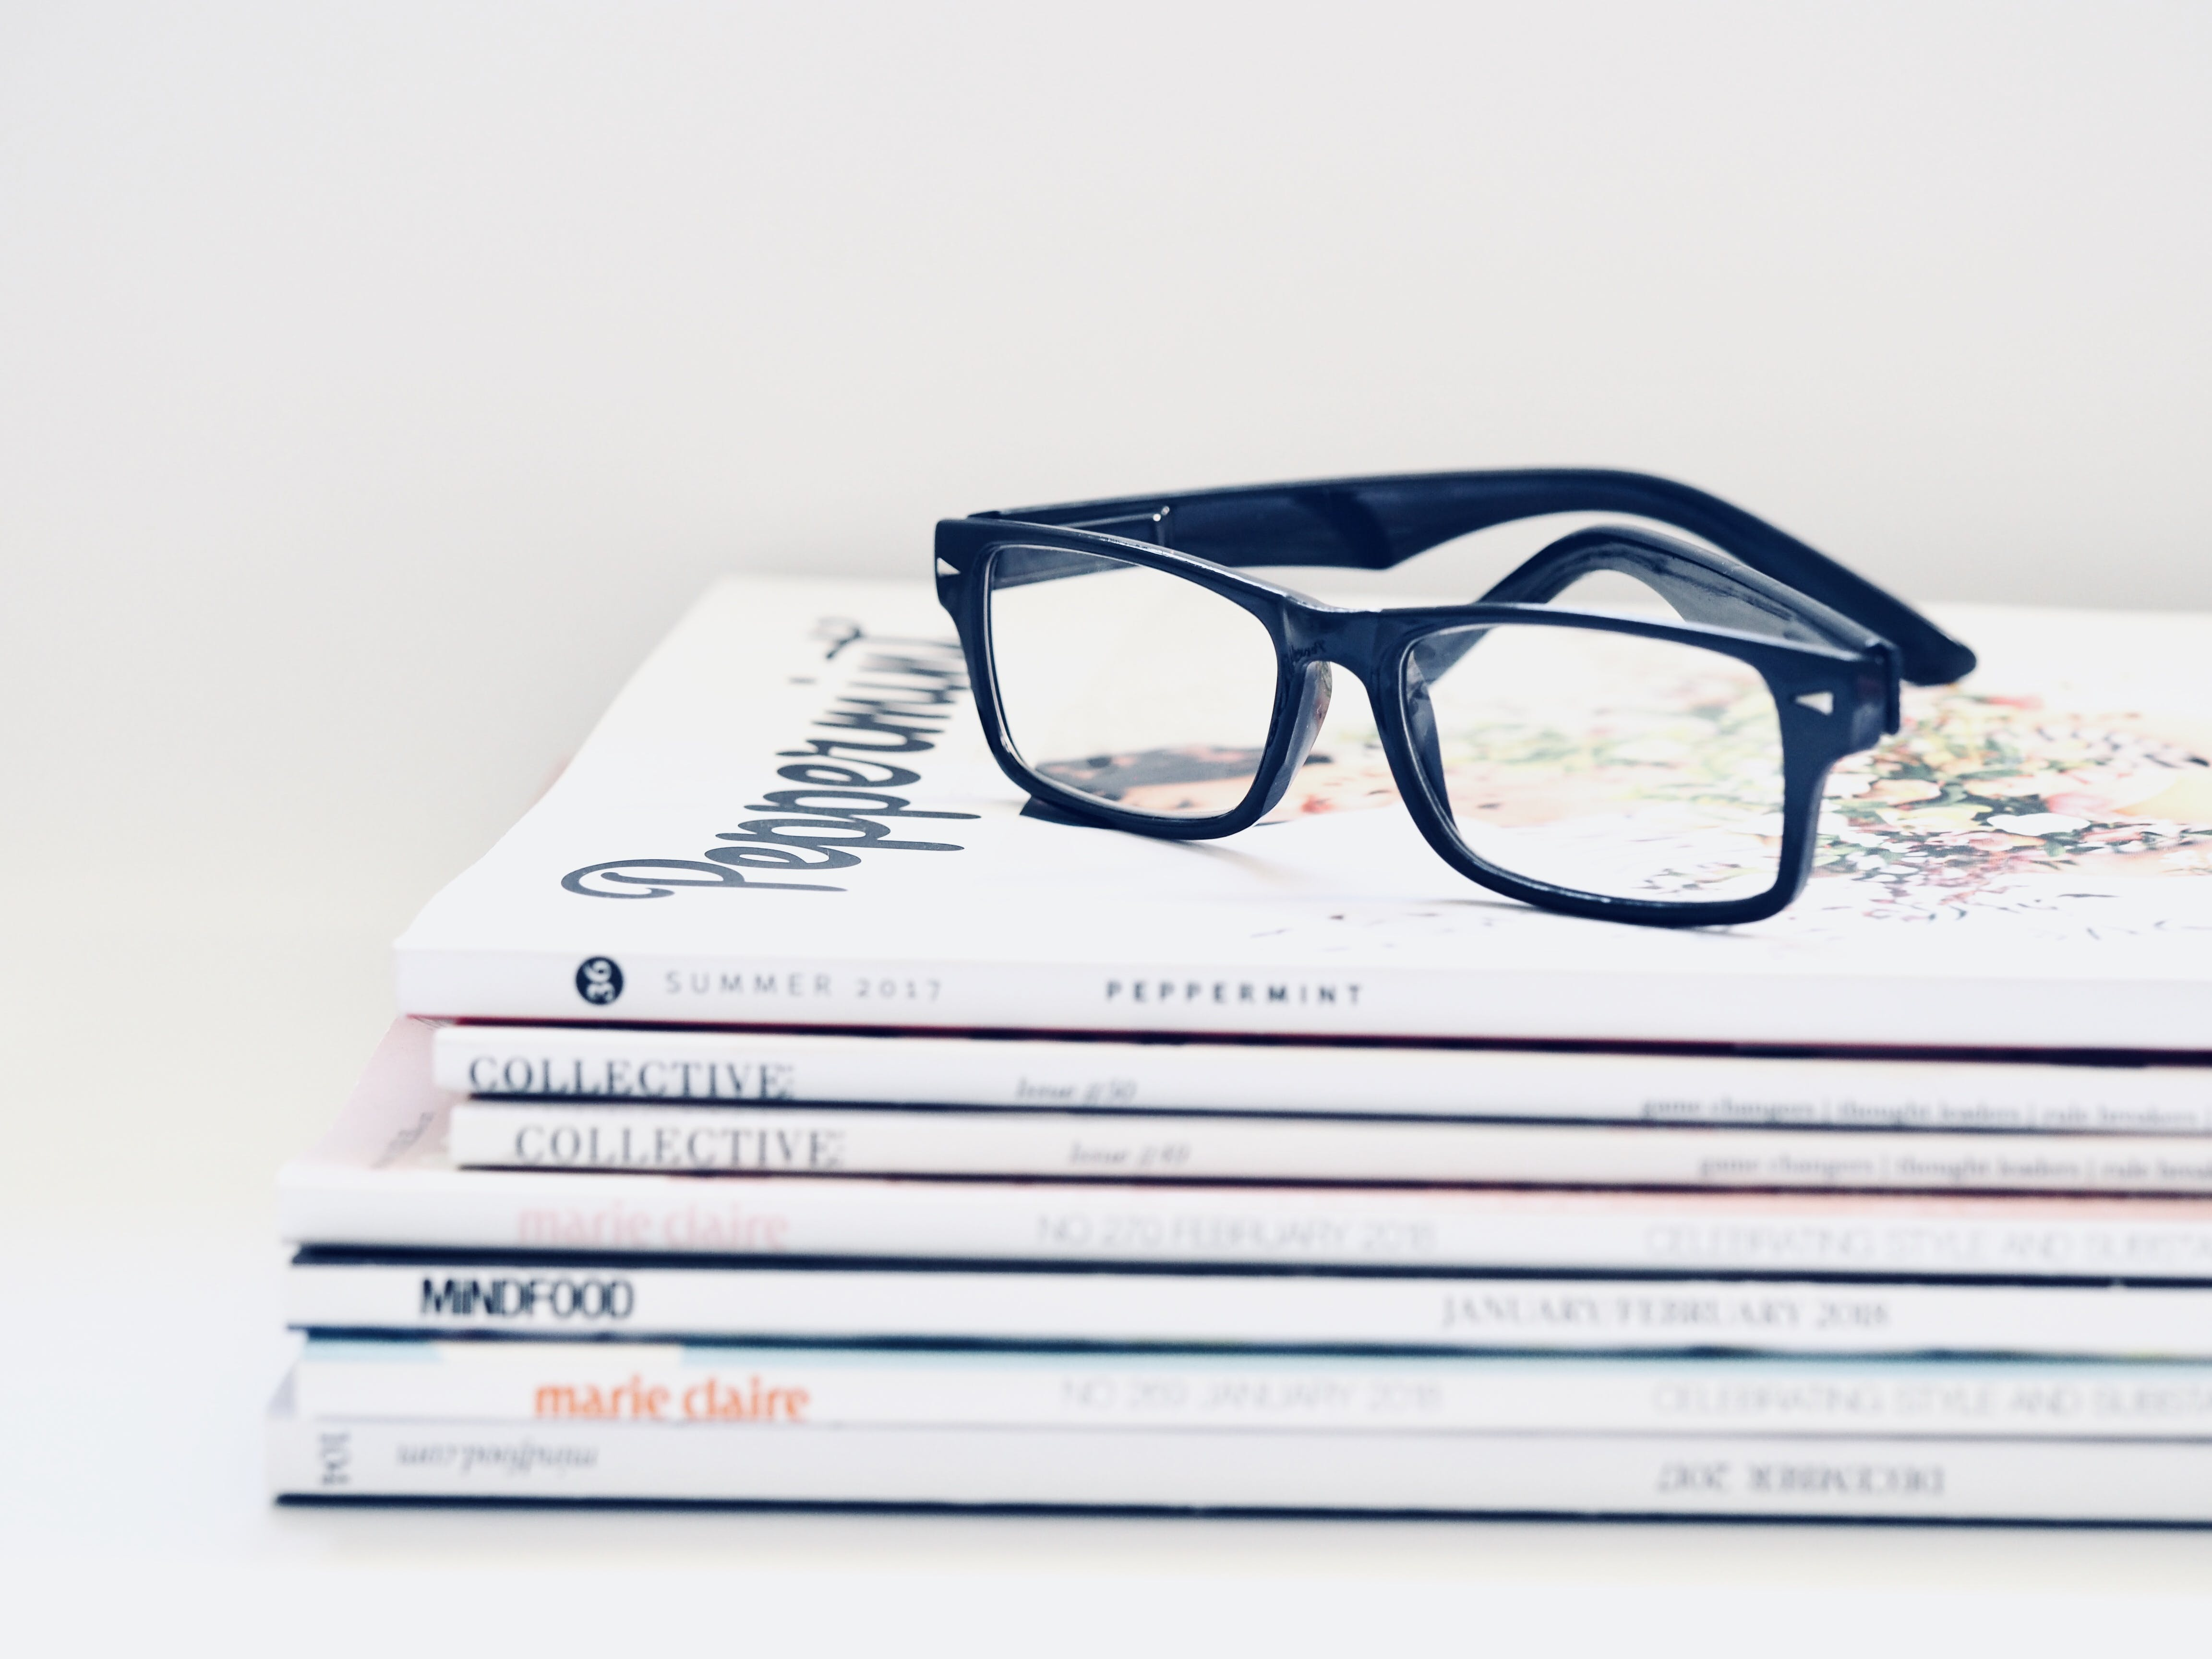 Black Framed Eyeglasses on Seven Collective Books